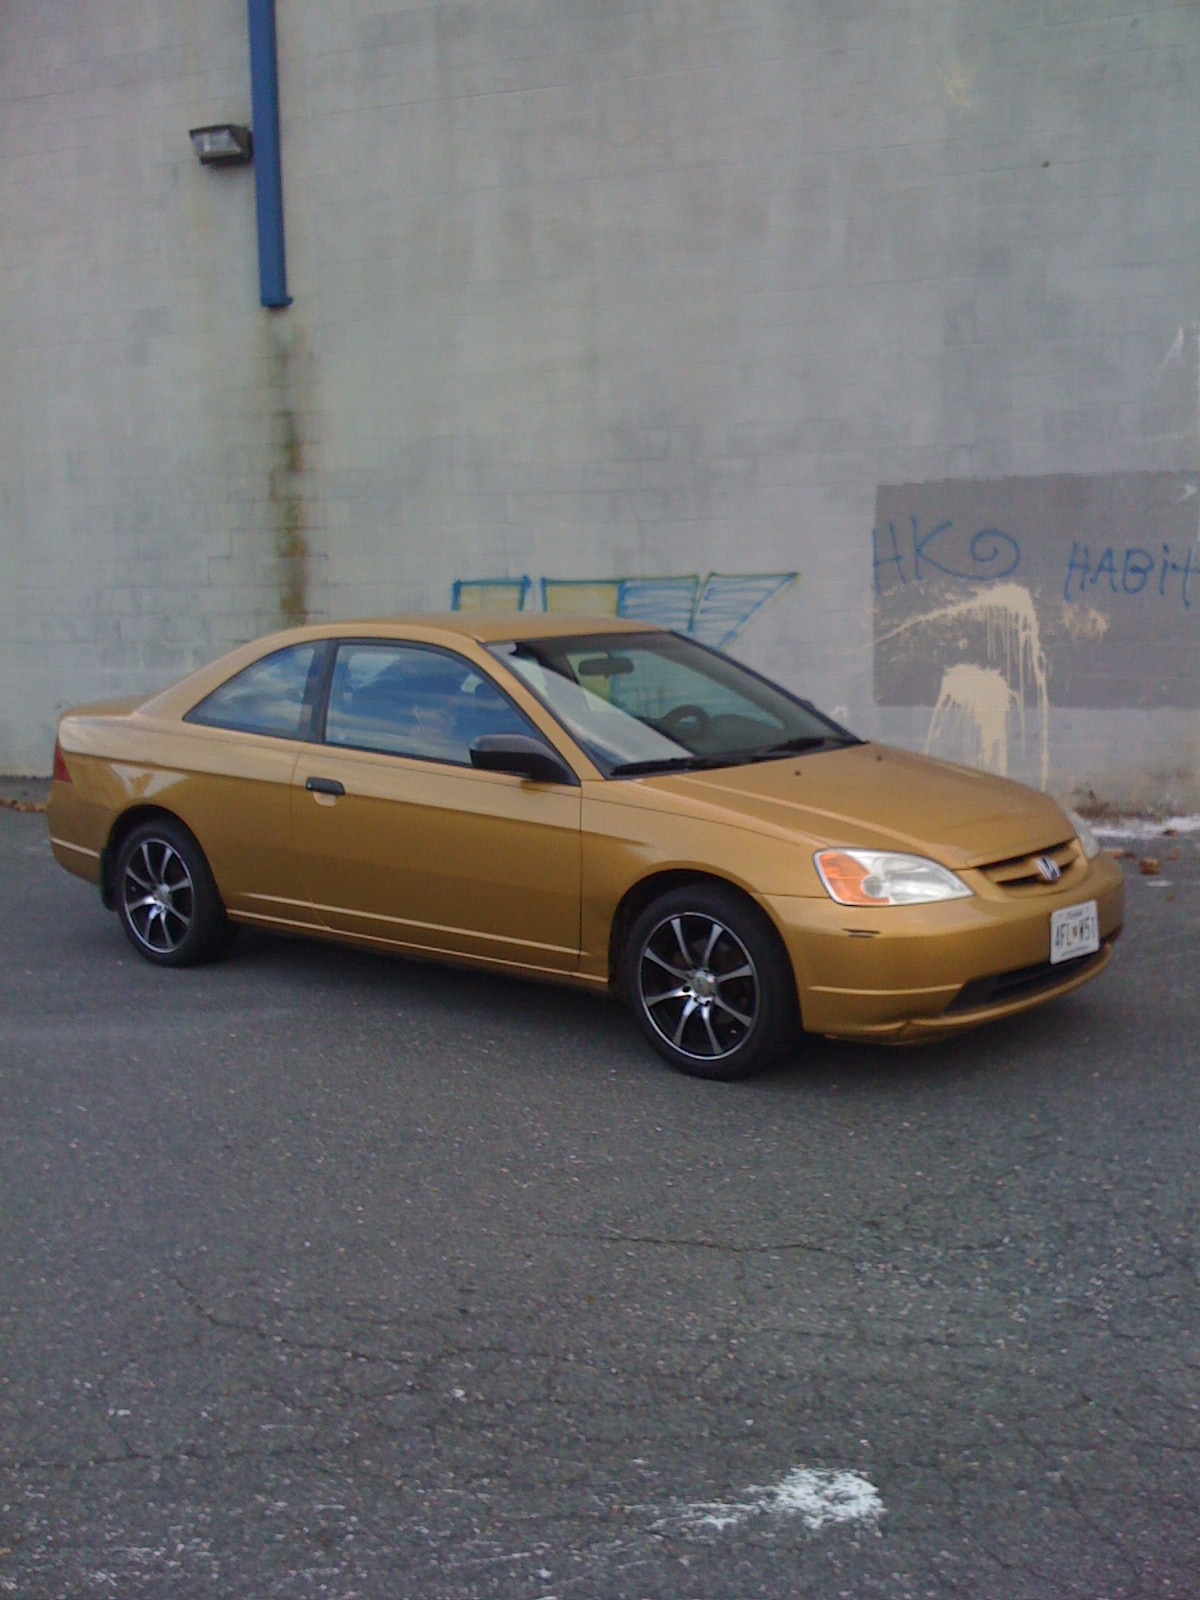 Attractive1 2001 Honda Civic 13927619